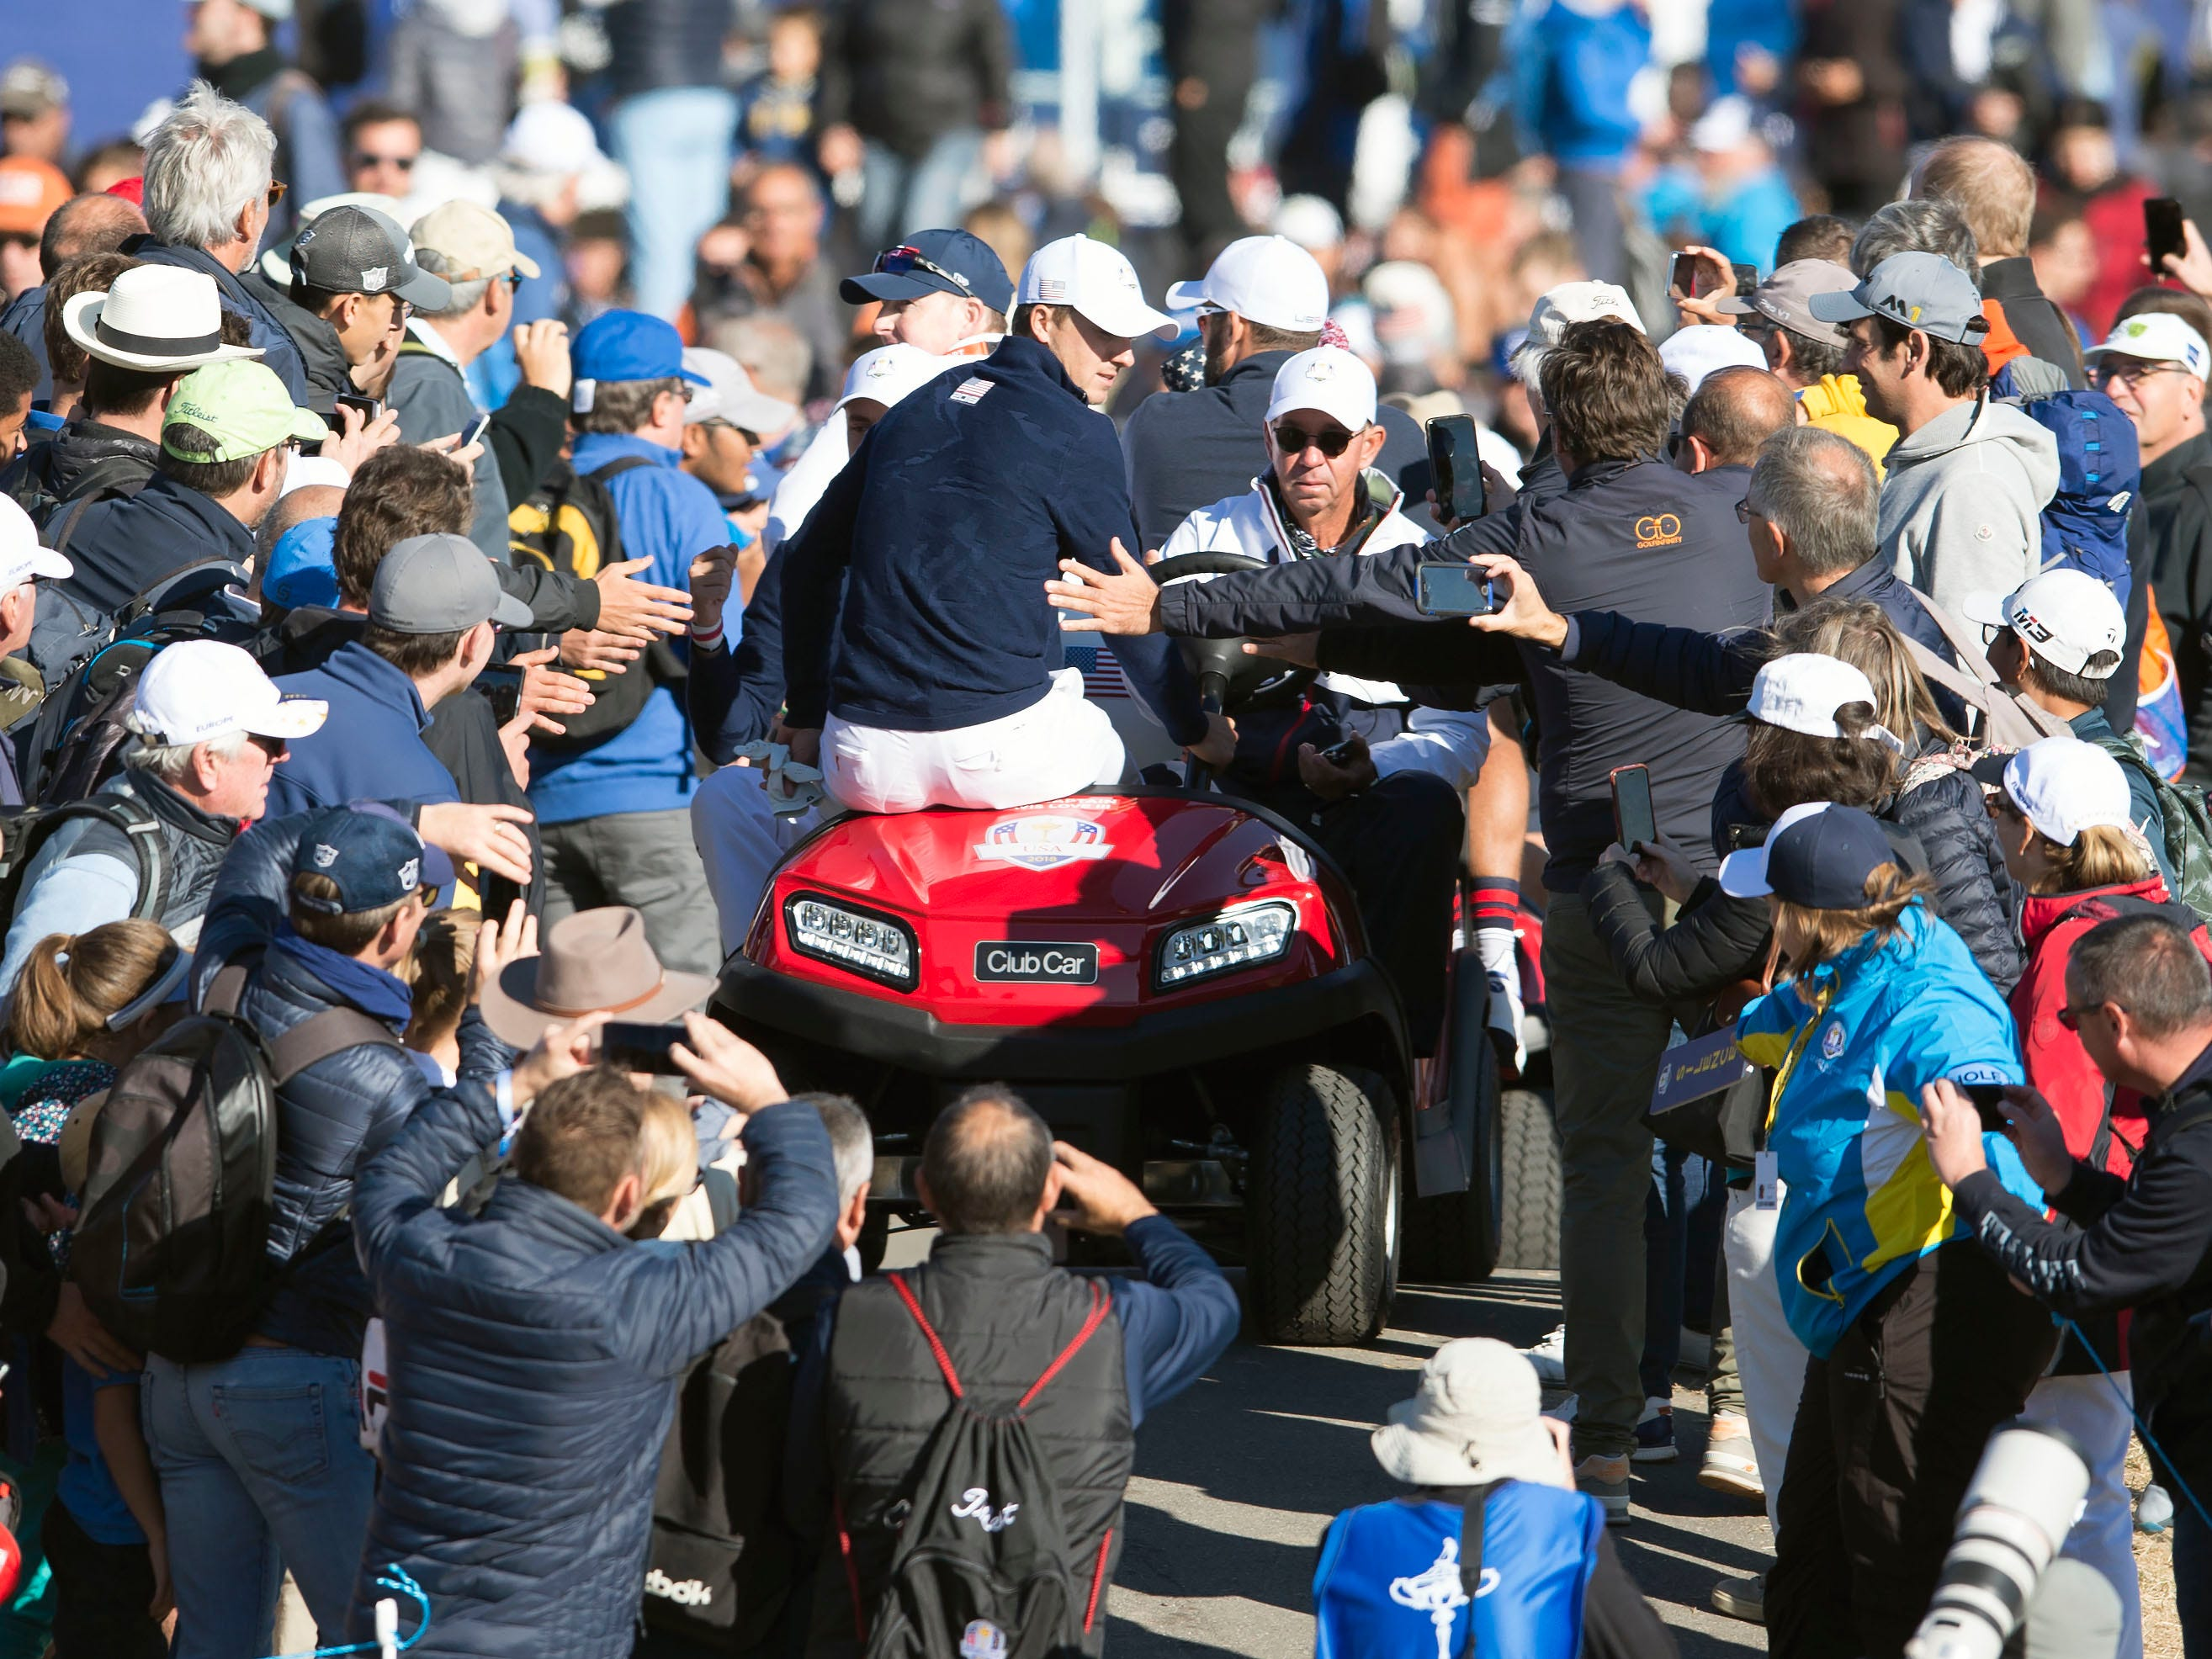 Jordan Spieth and Justin Thomas make their way by buggy during a Ryder Cup practice round.